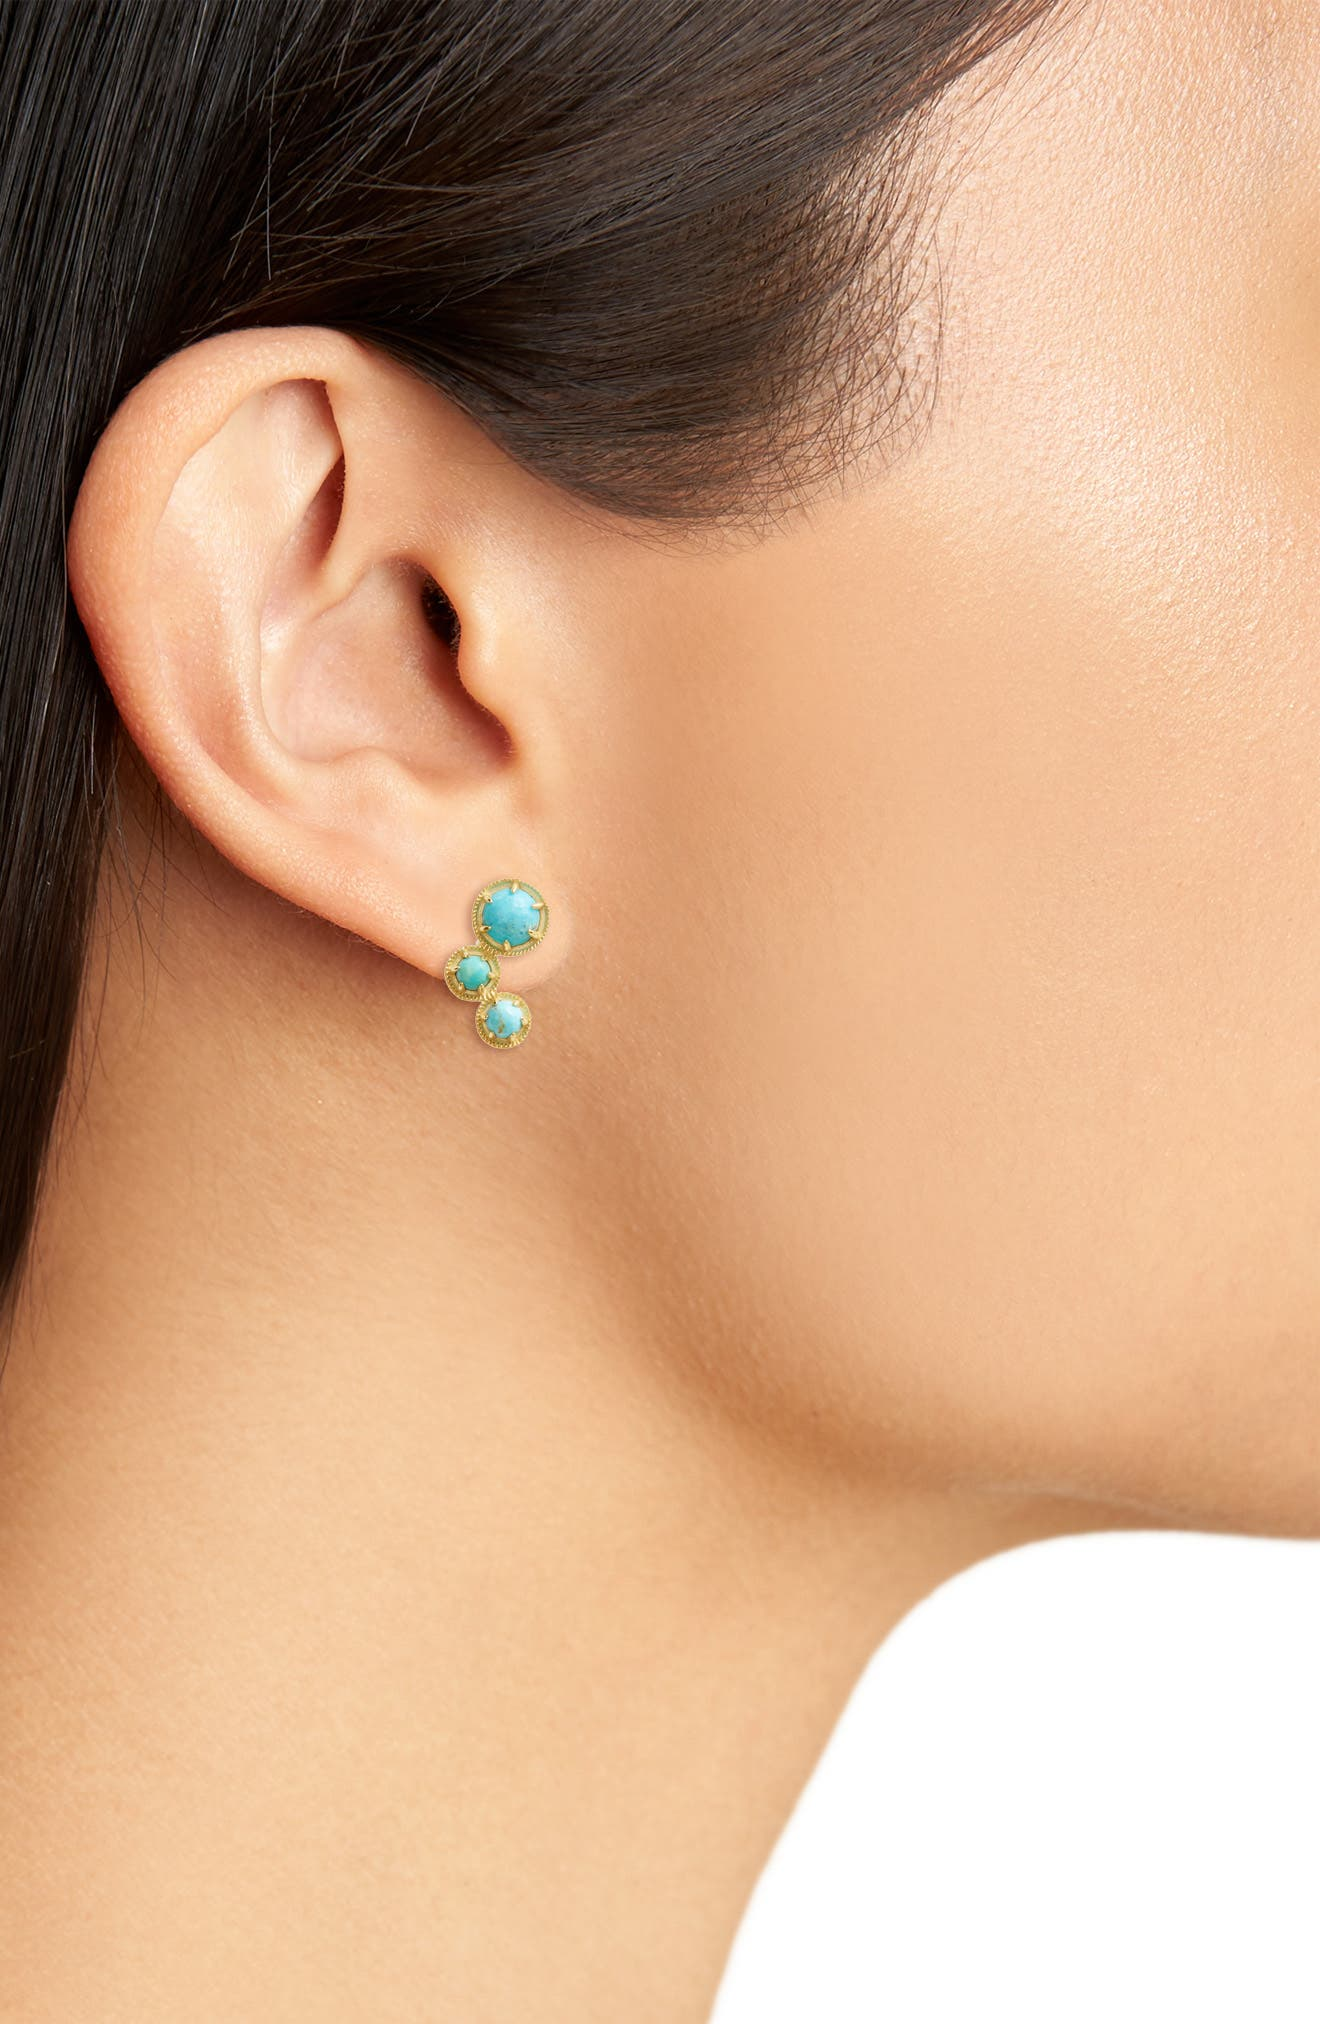 Cleo Doublet Ear Crawlers,                             Alternate thumbnail 3, color,                             TURQUOISE/ GOLD